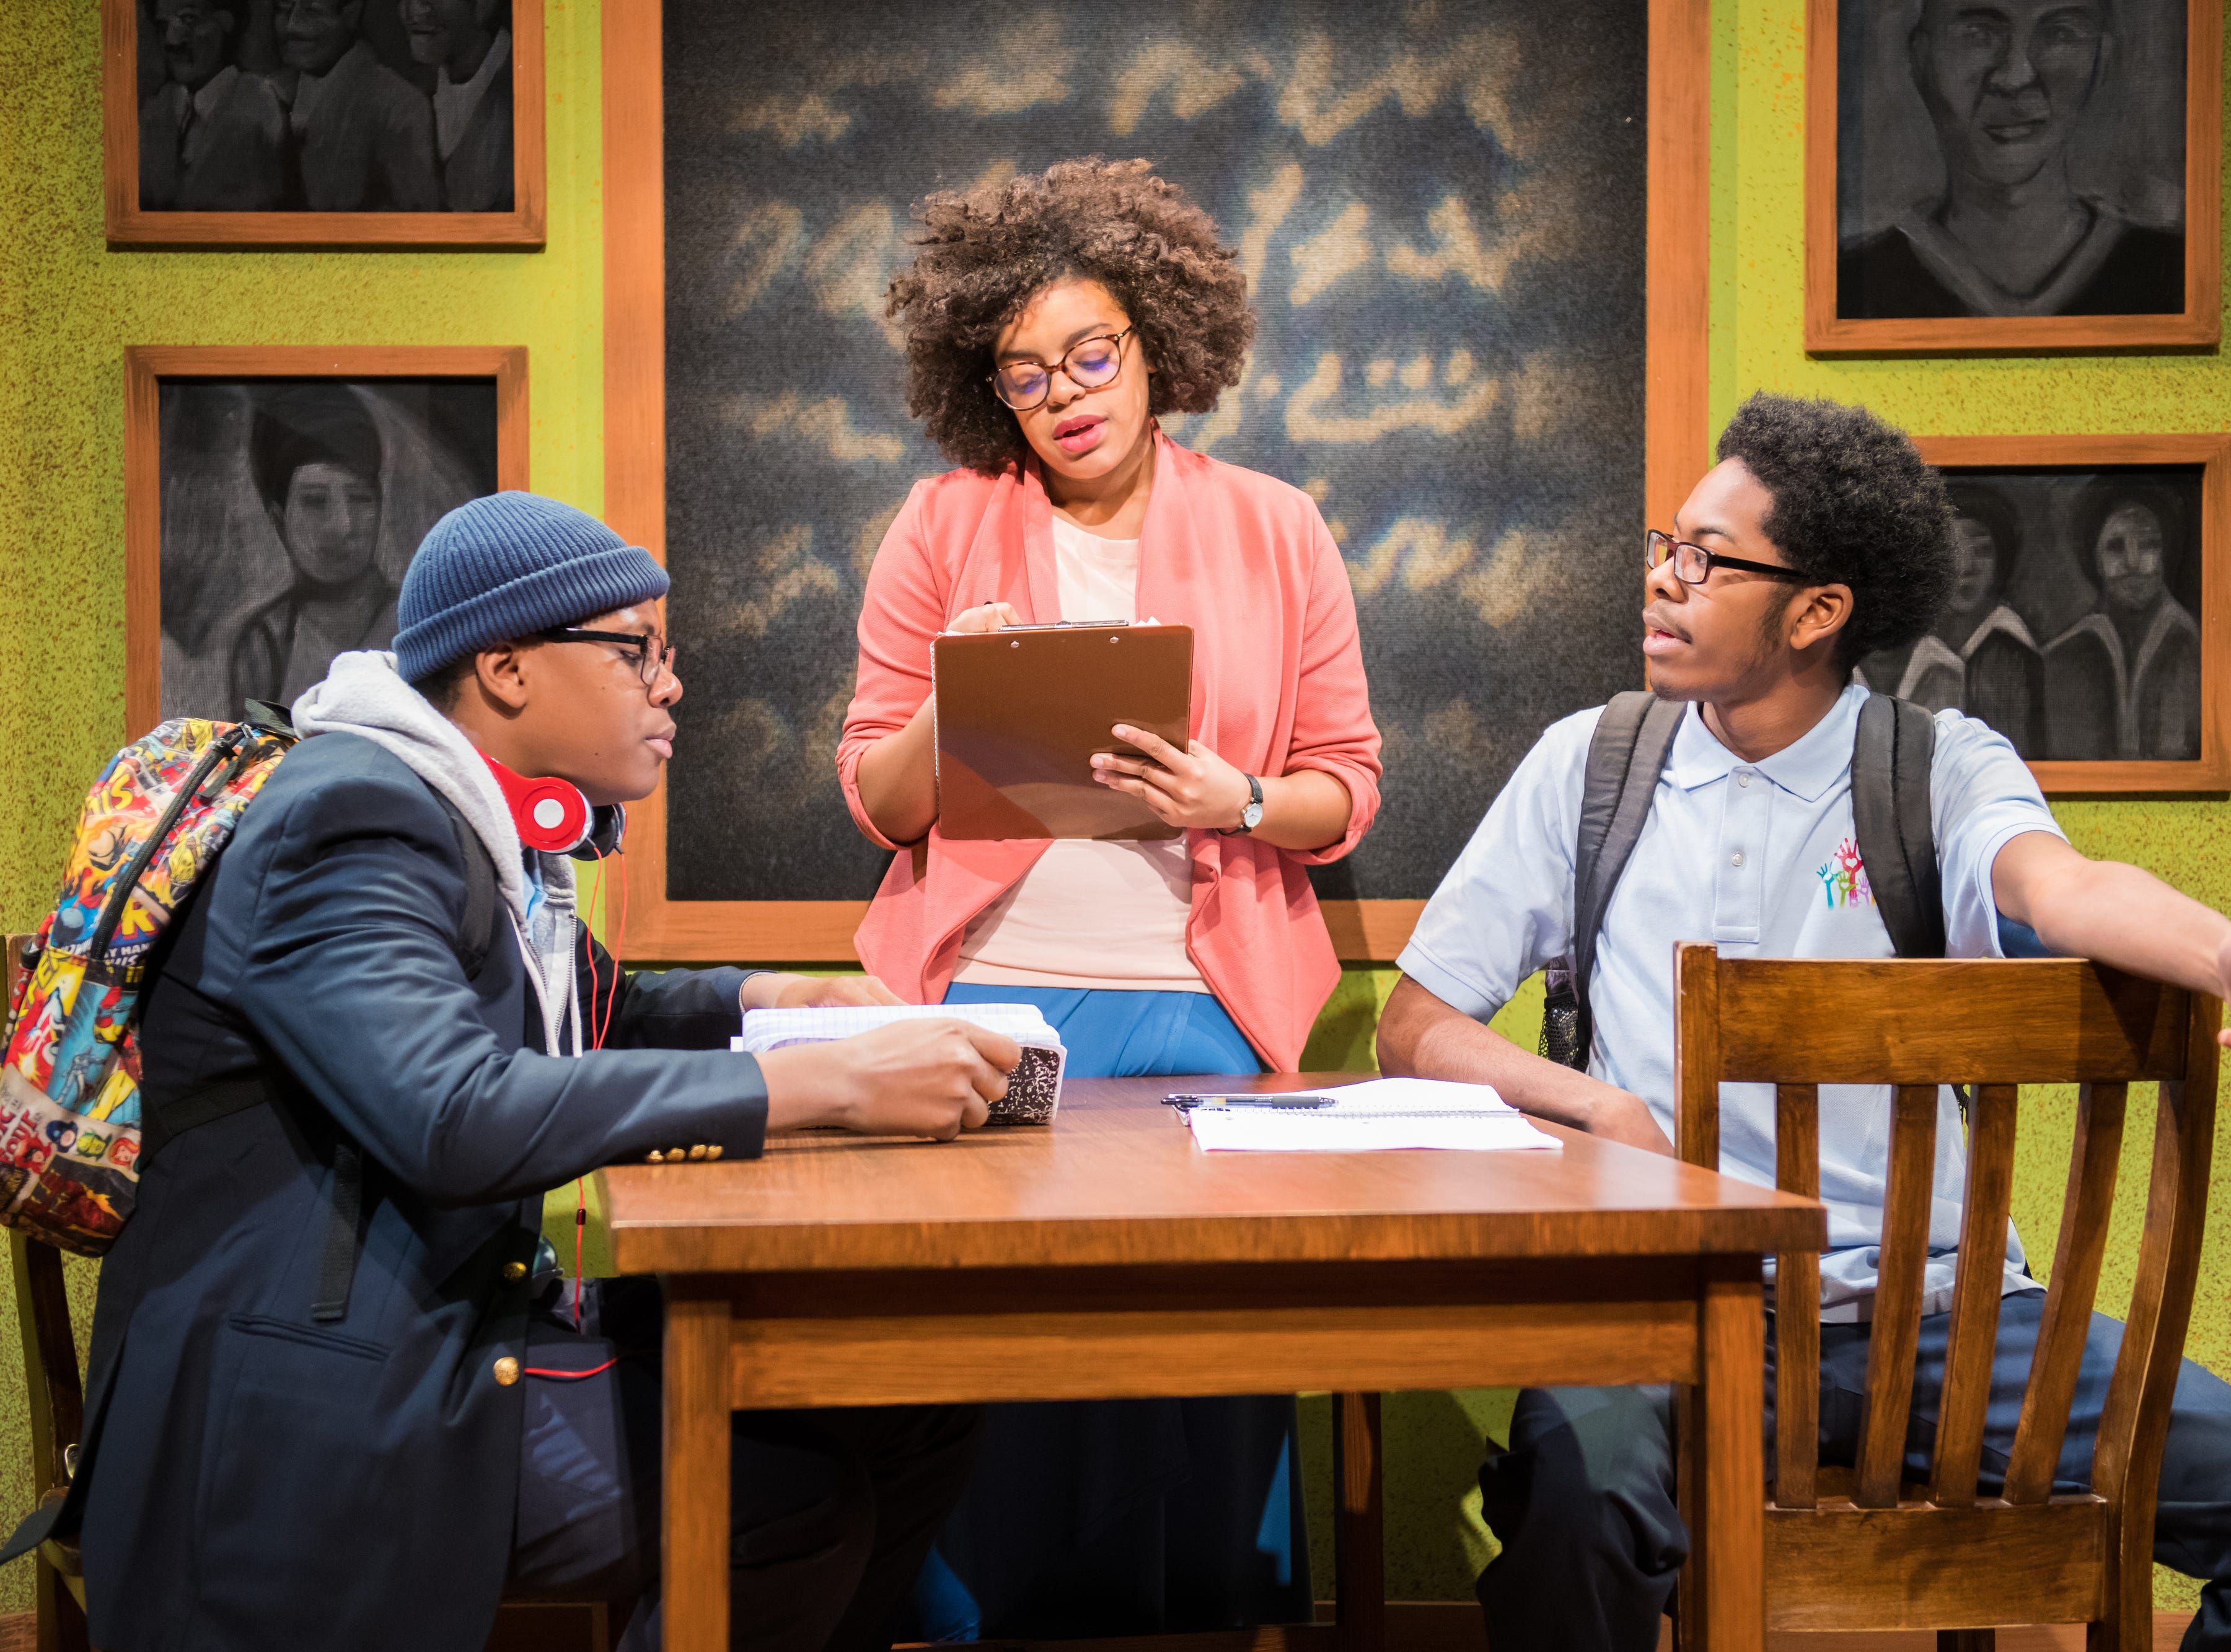 """Kamani Graham, Derrick Taylor and Nadja Simmonds perform in First Stage's production of """"Locomotion"""" by Jacqueline Woodson, which continues through Feb. 24 at the Milwaukee Youth Arts Center, 325 W. Walnut St."""